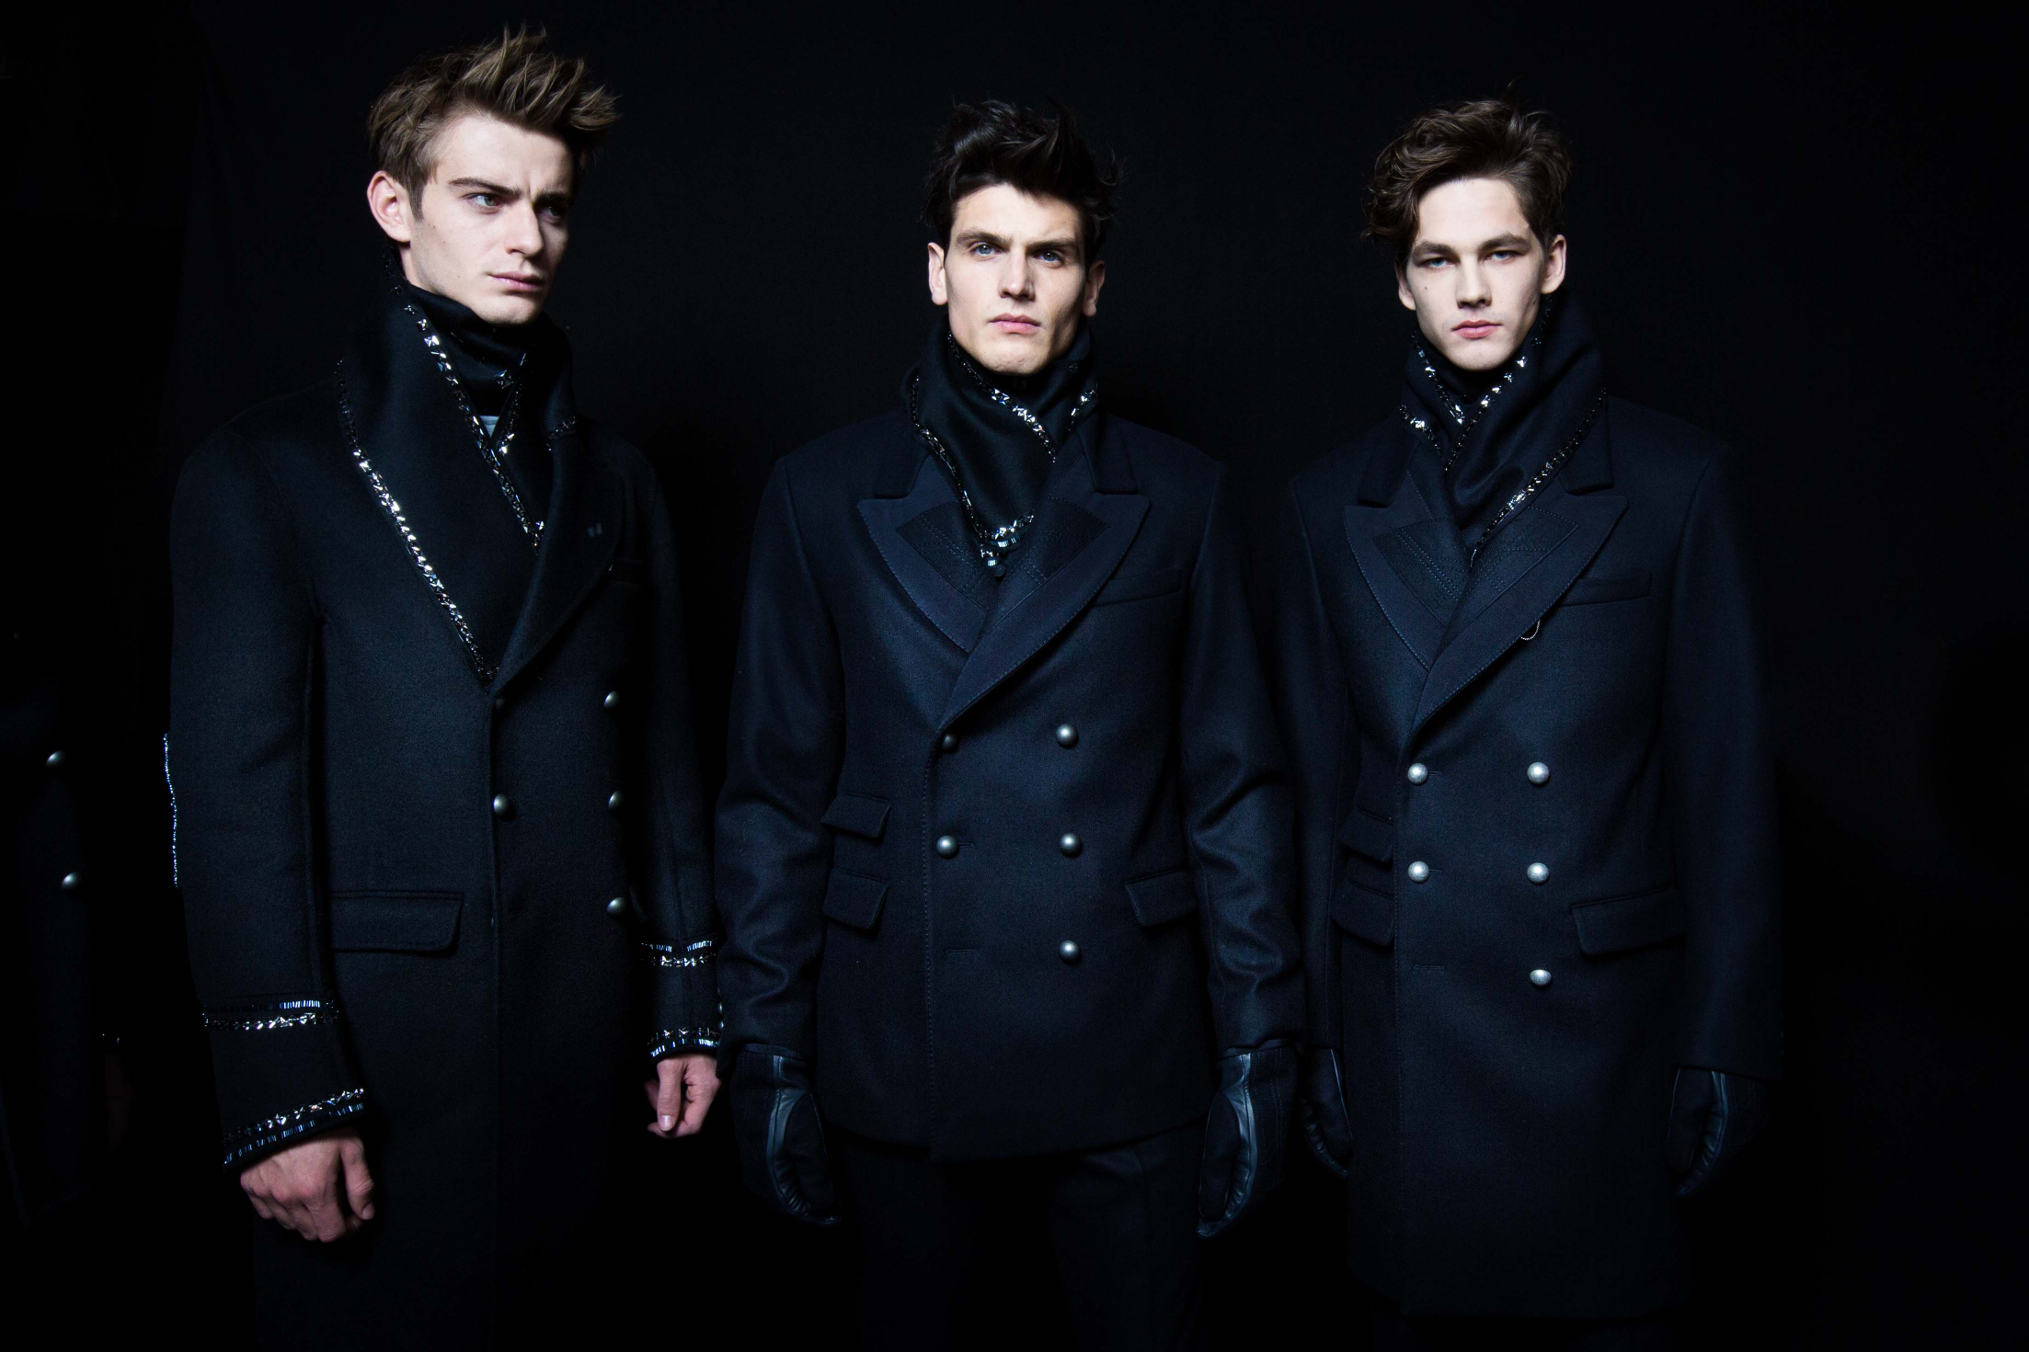 Backstage Ermanno Scervino Fw 2015-16 Menswear